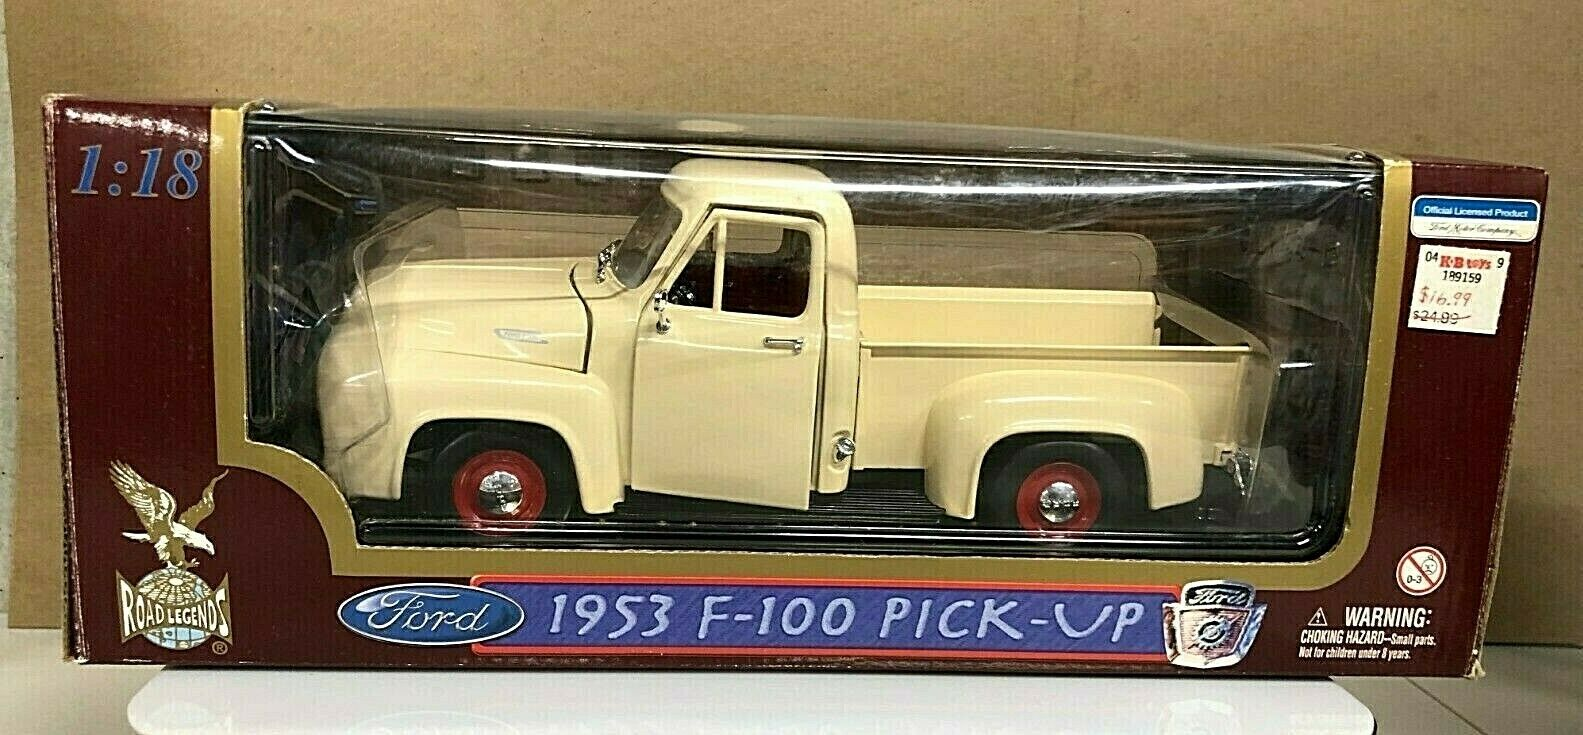 ROAD LEGENDS 1953 F-100 FORD PICK-UP 1 18 DIE CAST CREAM       3061